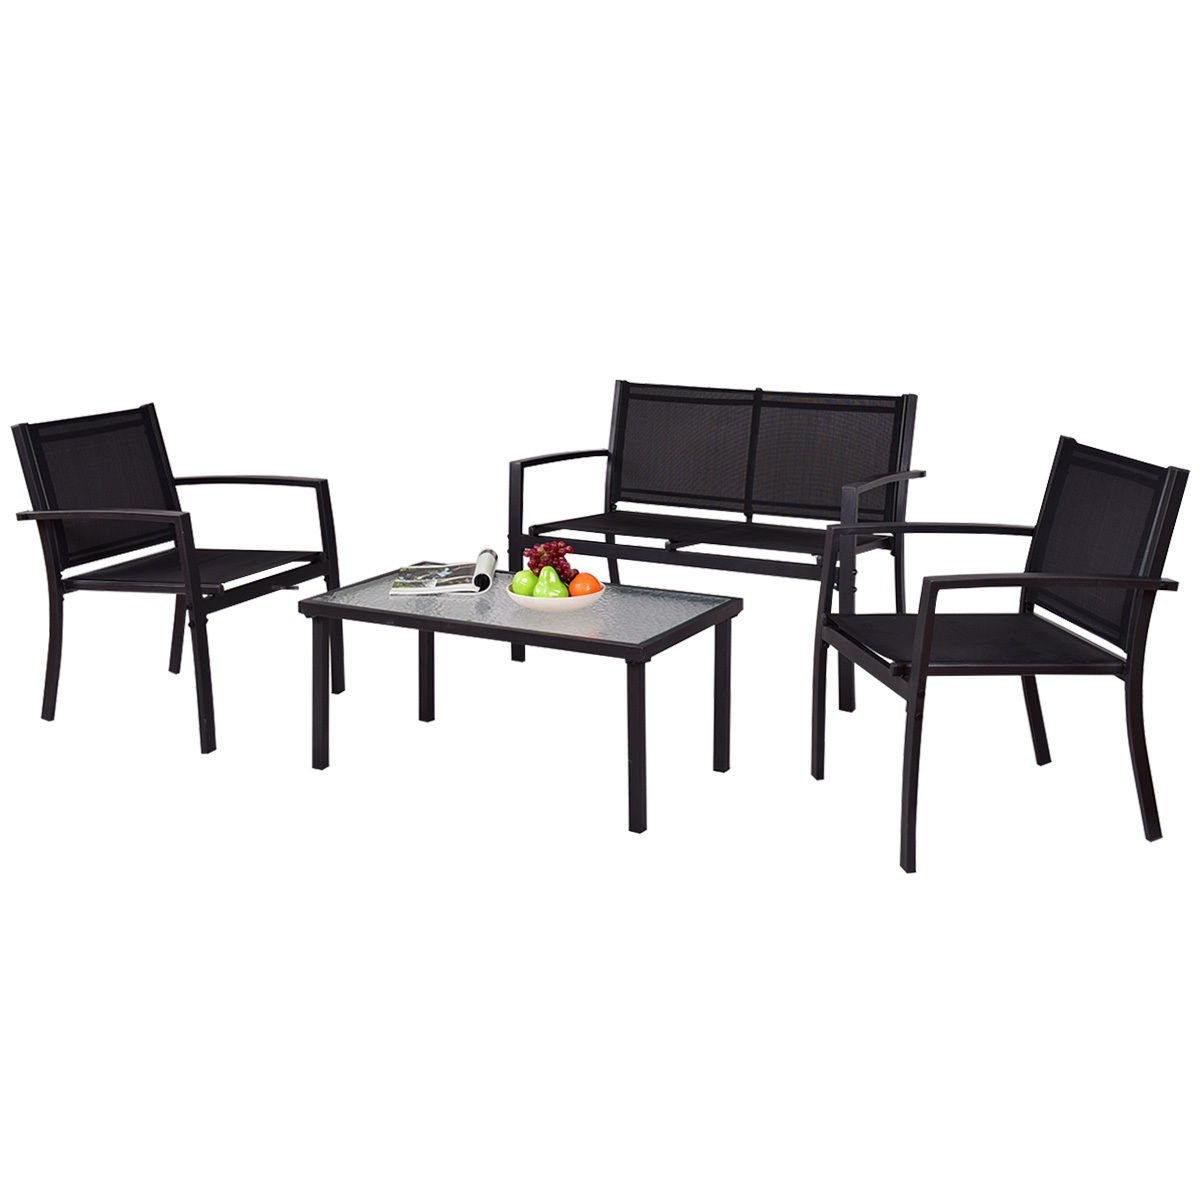 Tangkula Patio Furniture Set 4 Piece Outdoor Patio Steel Frame Table and Sofa Sets Conversation Set